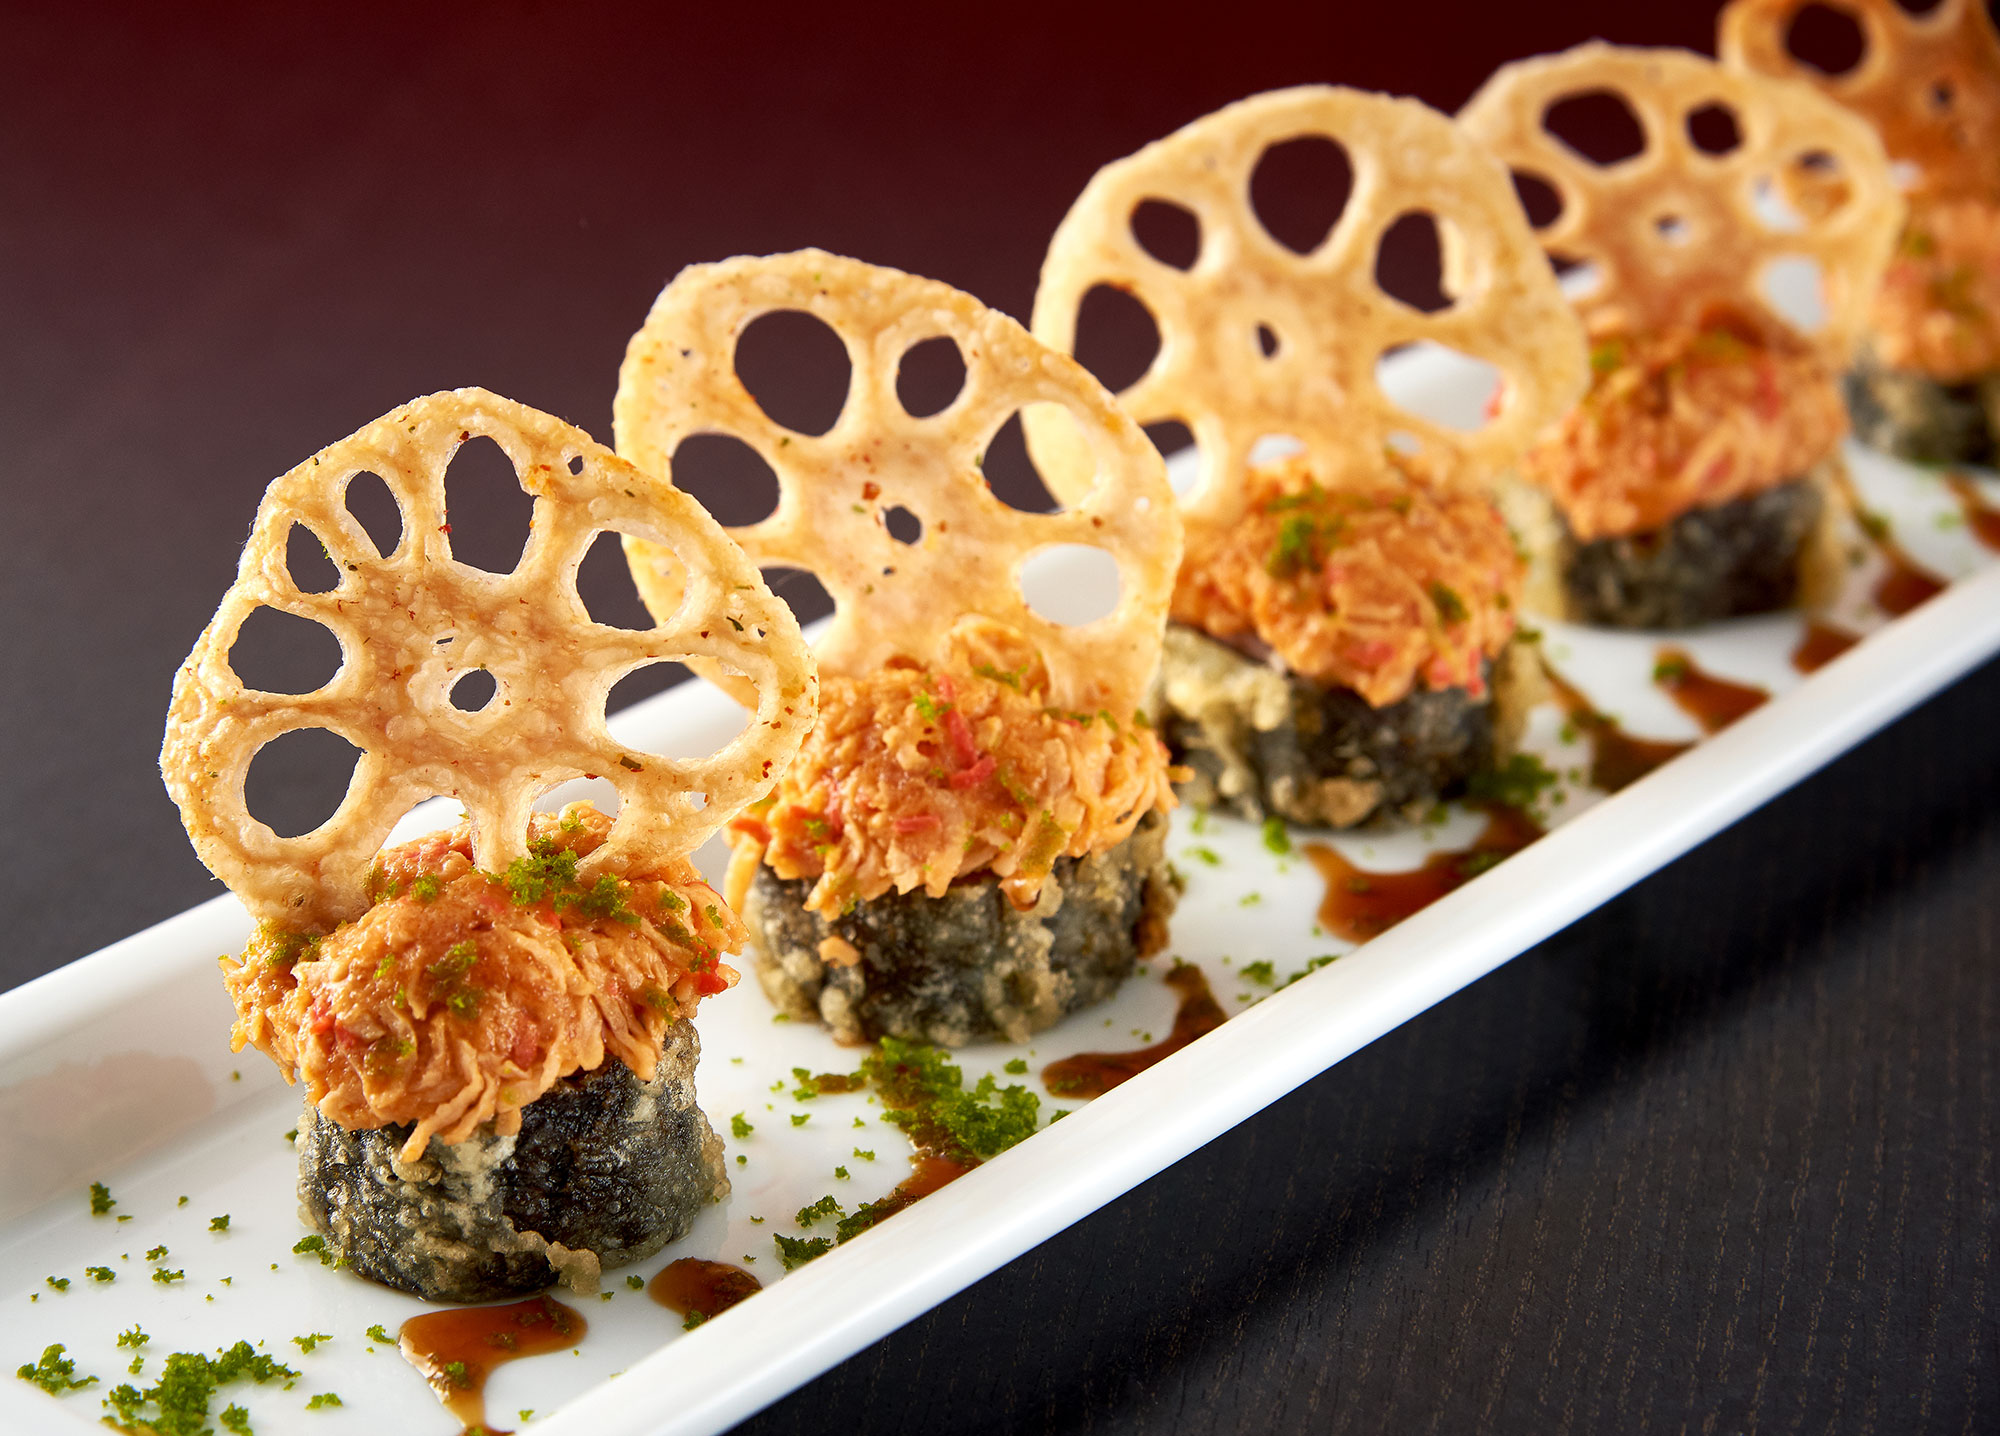 SPICY LOTUS ROLL